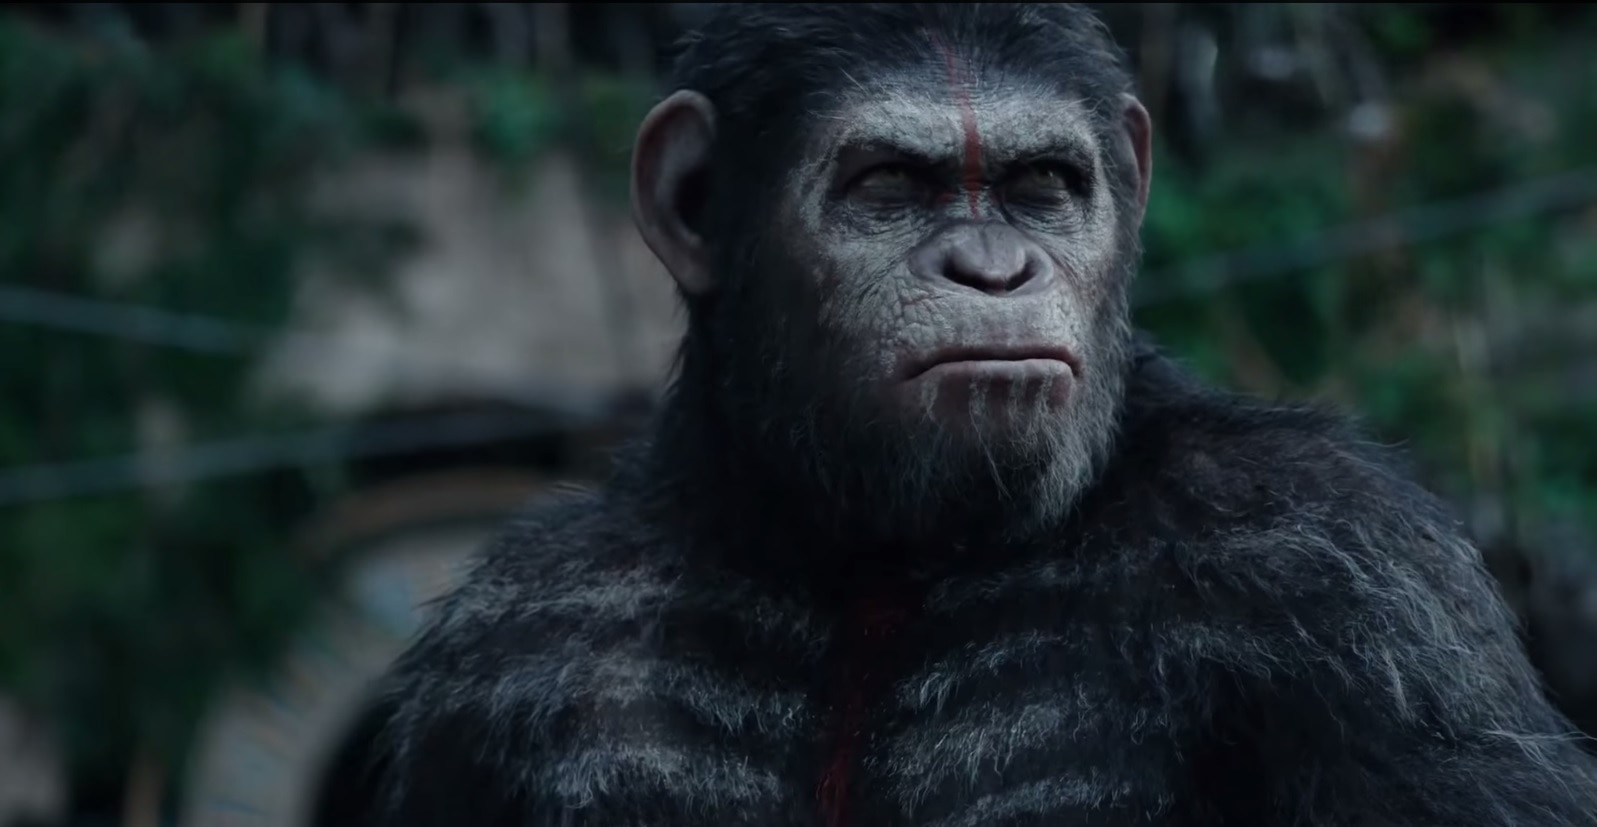 dawn of the planet of the apes andy serkis as cesar - Andy Serkis Talks the Future of the Planet of the Apes